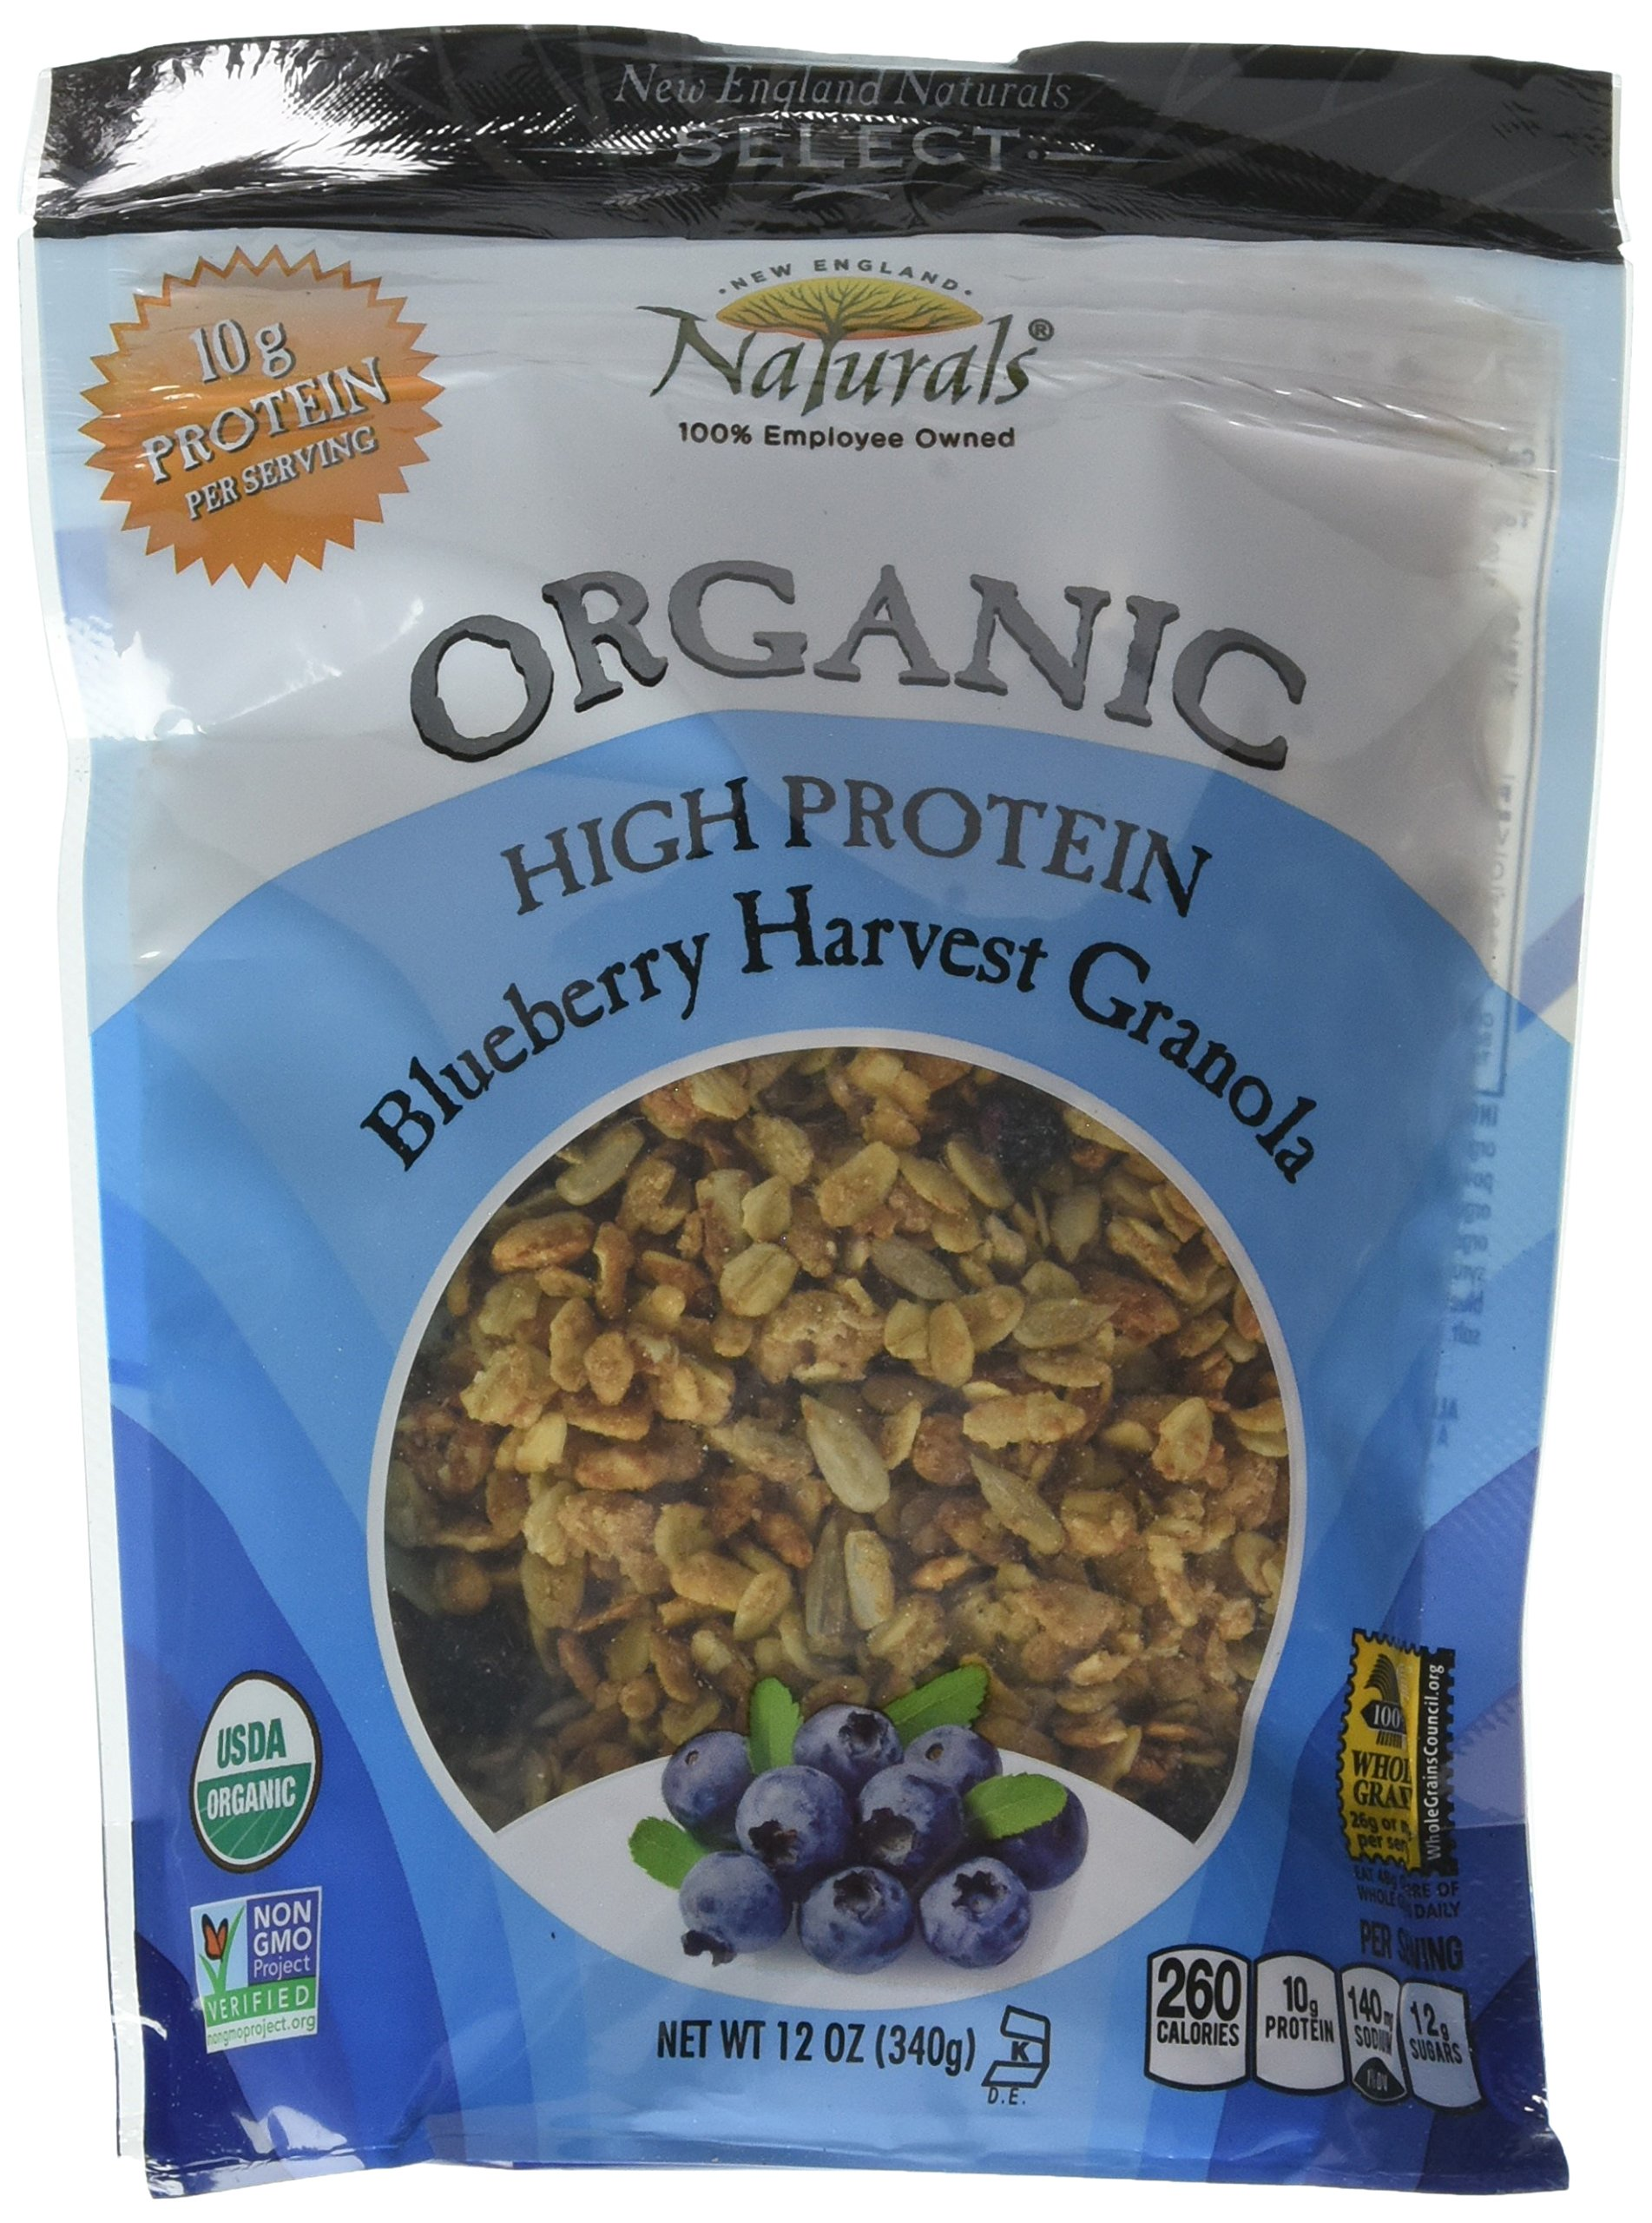 New England Natural Bakers Organic High Protein Blueberry Harvest Granola, 12 Ounce - 6 per case.